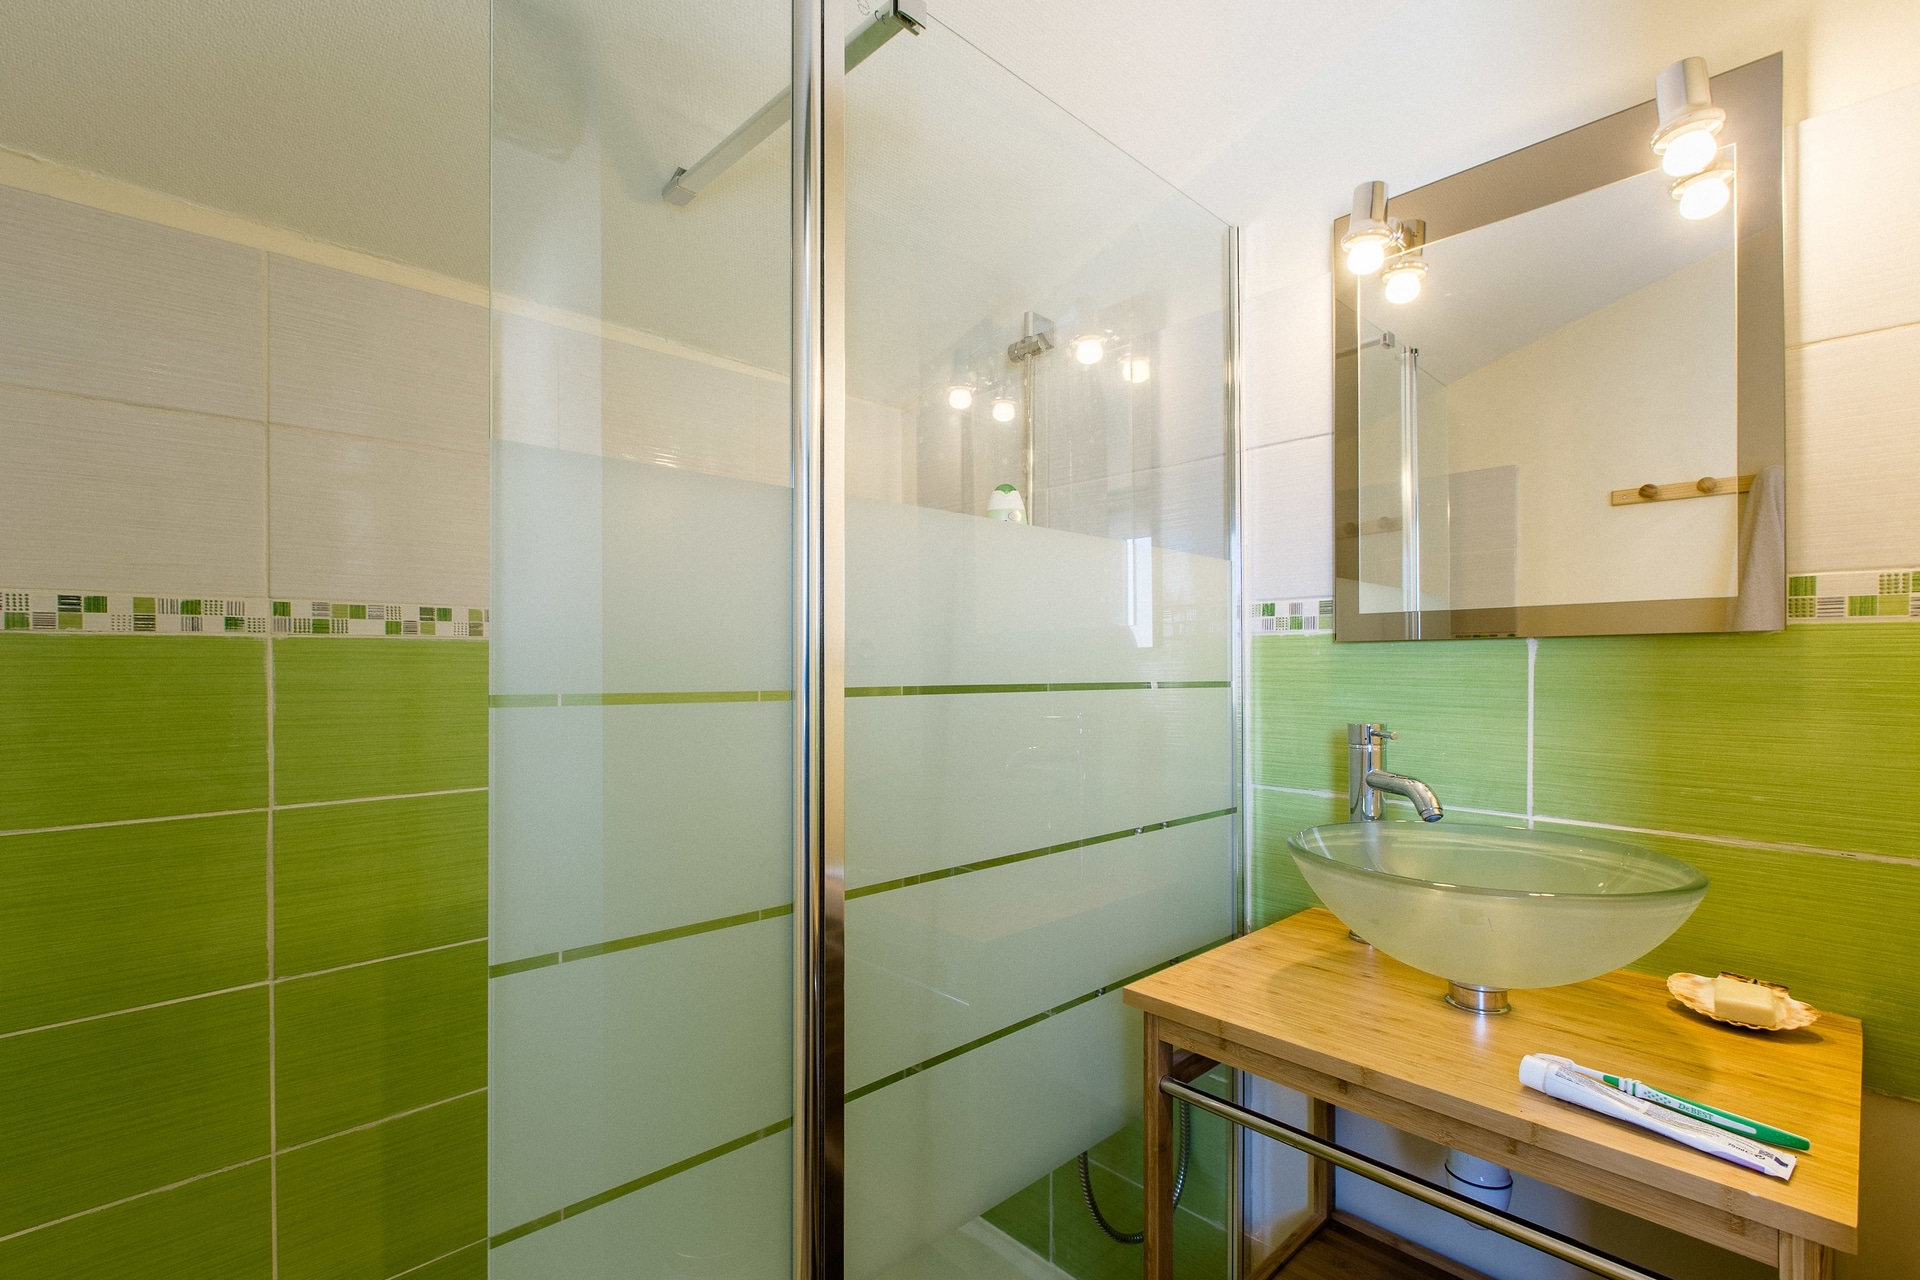 nami-house-anglet-green-shared-bathroom-shower-bamboo